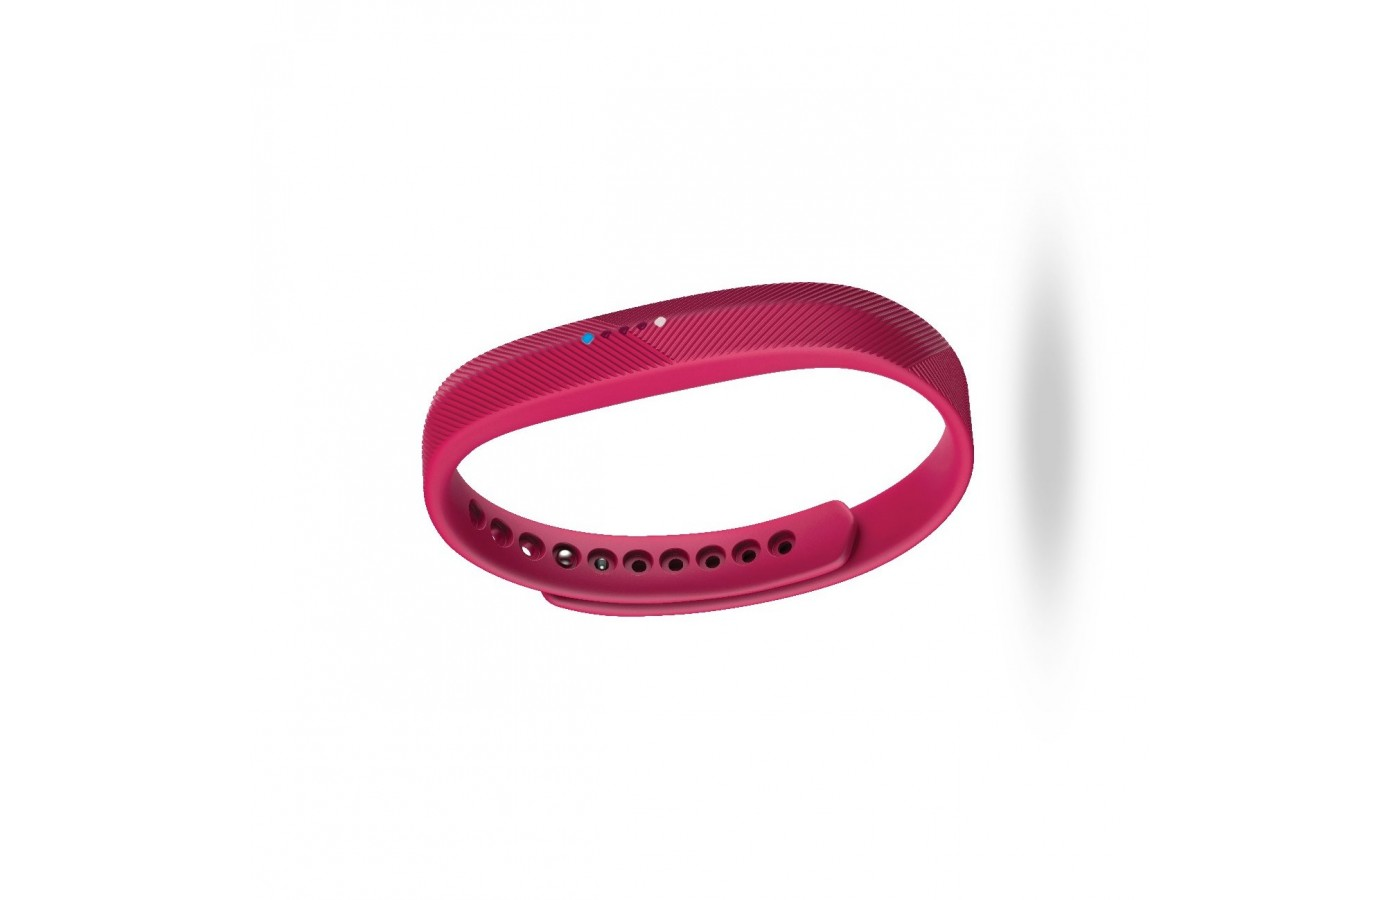 The SmartTrack feature is an advanced feature of fitness trackers on the market.